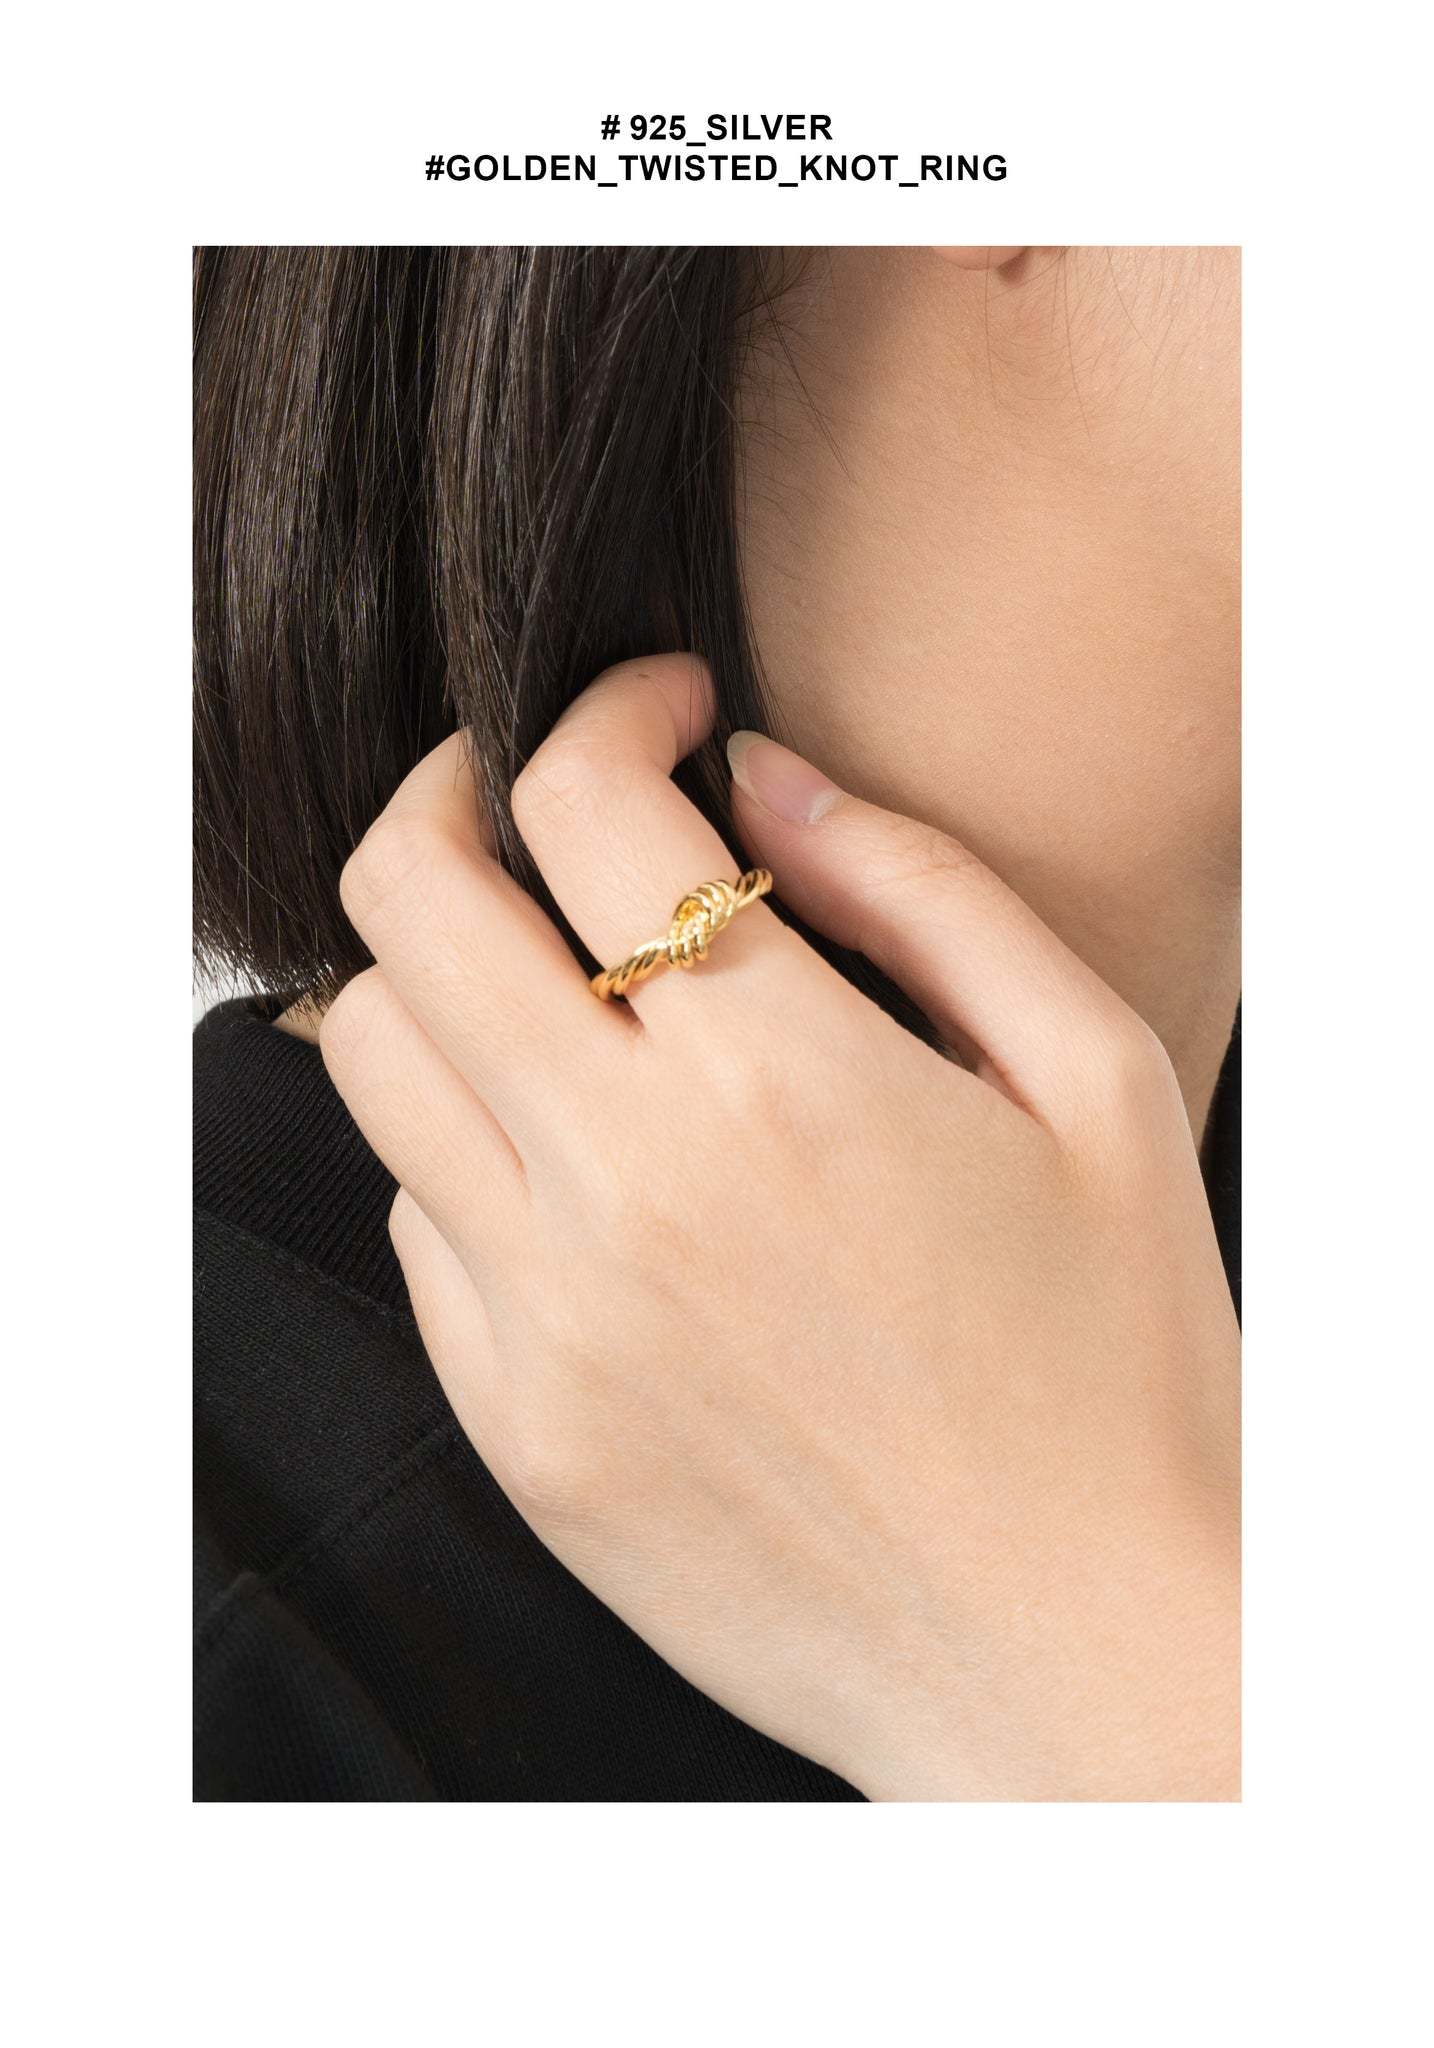 925 Silver Golden Twisted Knot Ring - whoami